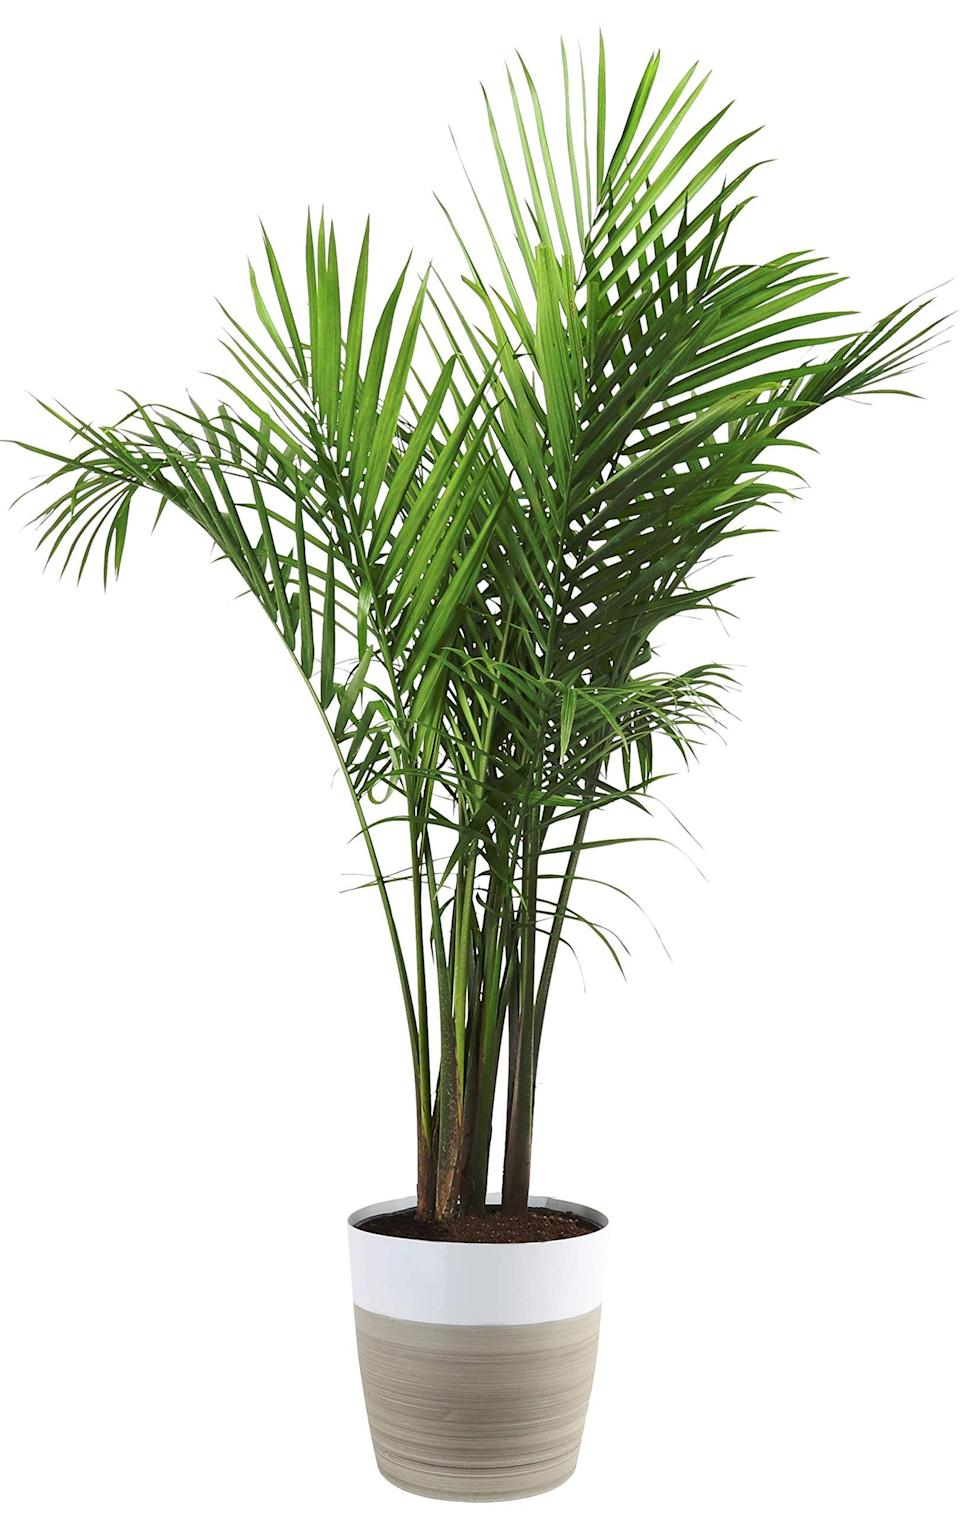 """<h3>Areca Palm</h3><br>This pretty palm is great for that awkward plot of space that you don't quite know what to do with. Plus, according to Bishop, it's super easy to care for. """"All you have to do is water it regularly, but try not to overwater your plant to prevent root rotting. Place in a sunny spot in your home that doesn't receive direct sunlight. This plant has many benefits and one of them is being one of the best air-purifying plants and it is also pet-safe,"""" he notes. <br><br><em>Shop</em> <strong><em><a href=""""https://amzn.to/2MFi6sY"""" rel=""""nofollow noopener"""" target=""""_blank"""" data-ylk=""""slk:Costa Farms"""" class=""""link rapid-noclick-resp"""">Costa Farms</a></em></strong><br><br><strong>Costa Farms</strong> Costa Farms Majesty Palm Tree, Live Indoor Plant, 3 to, $, available at <a href=""""https://amzn.to/3amhnUG"""" rel=""""nofollow noopener"""" target=""""_blank"""" data-ylk=""""slk:Amazon"""" class=""""link rapid-noclick-resp"""">Amazon</a>"""